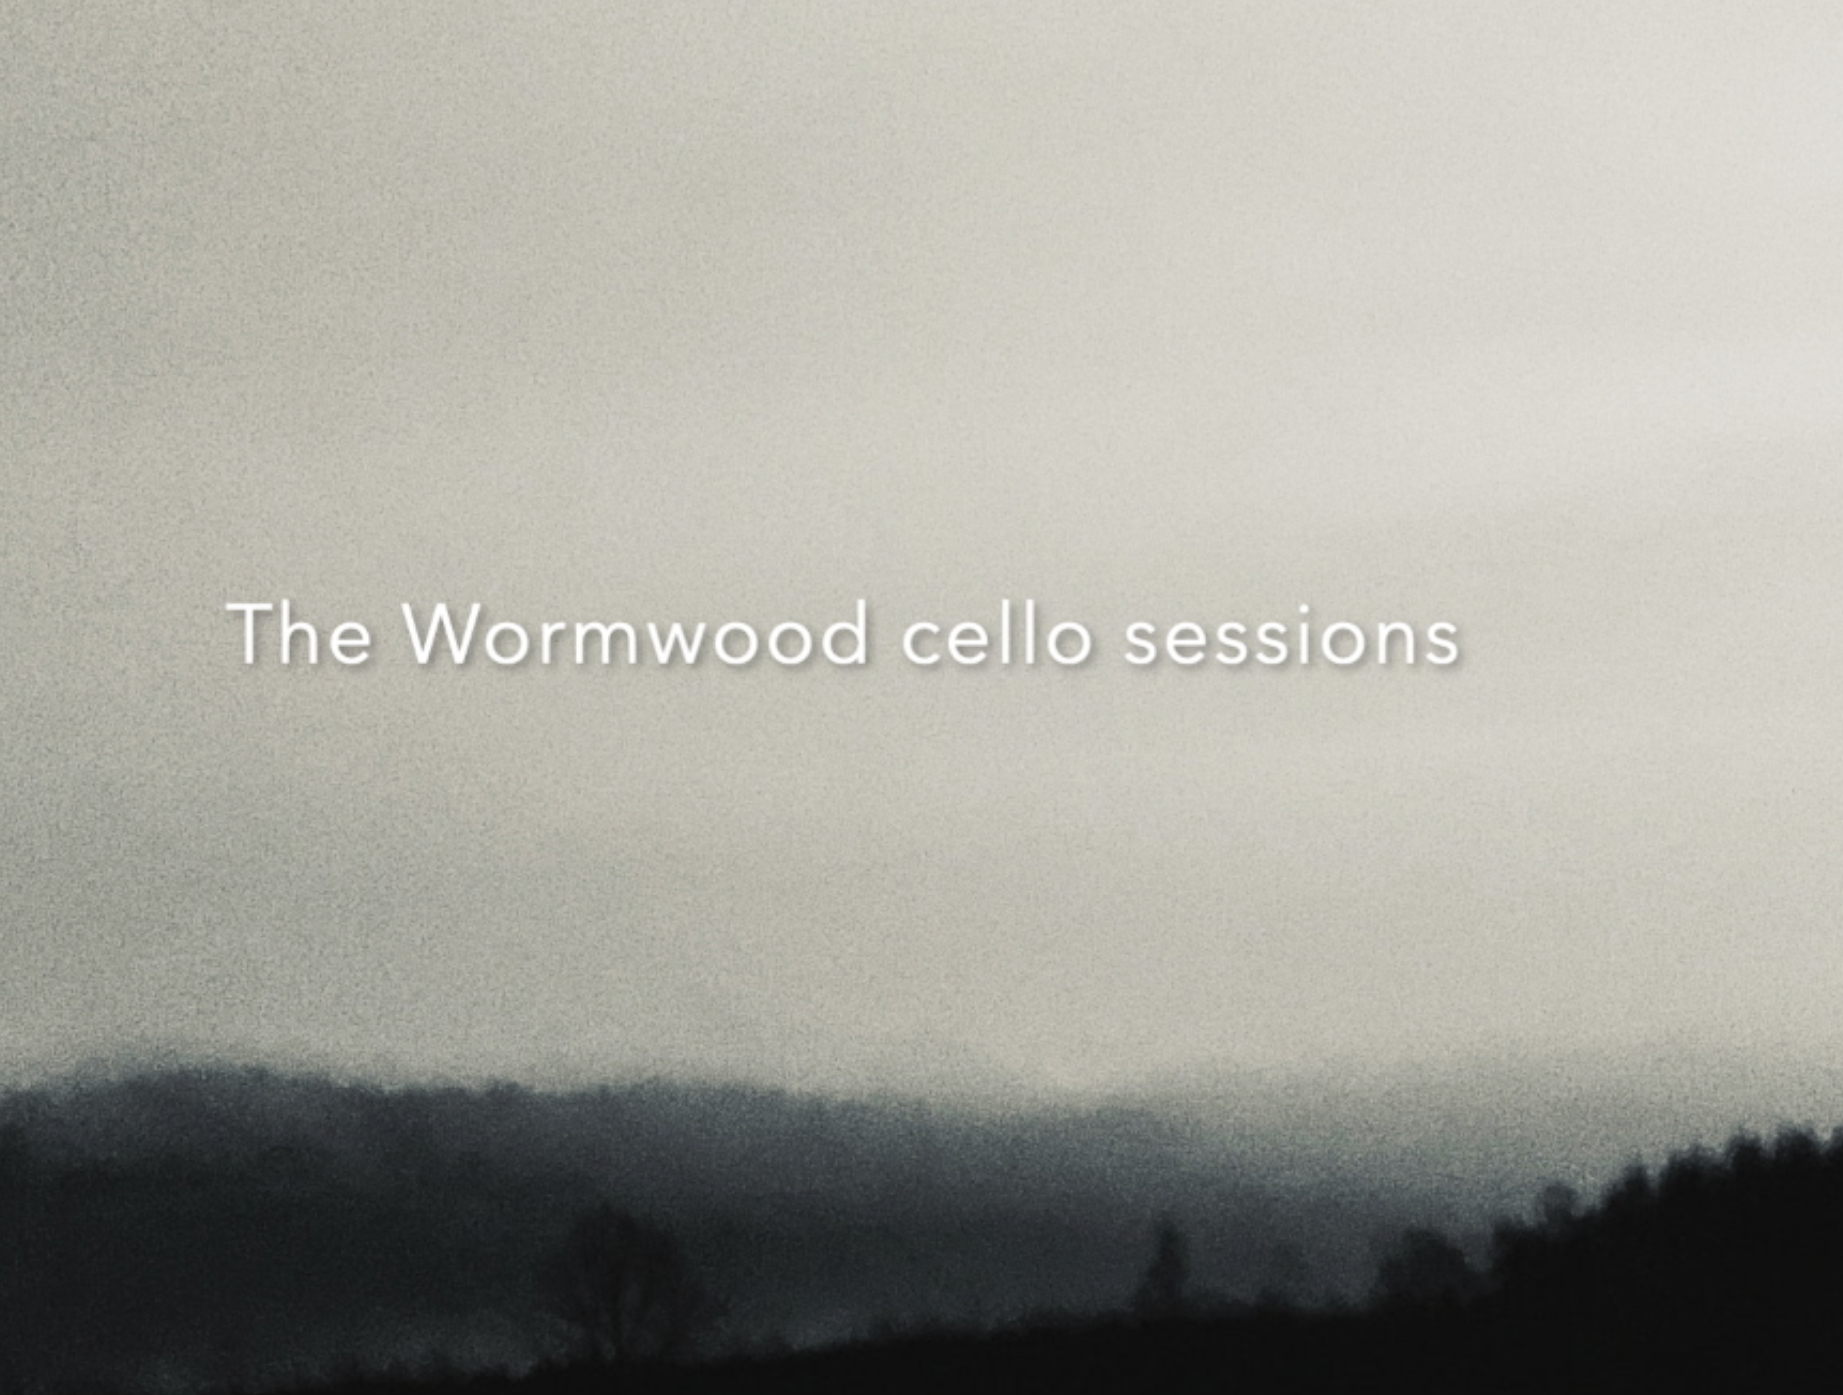 The Wormwood cello session